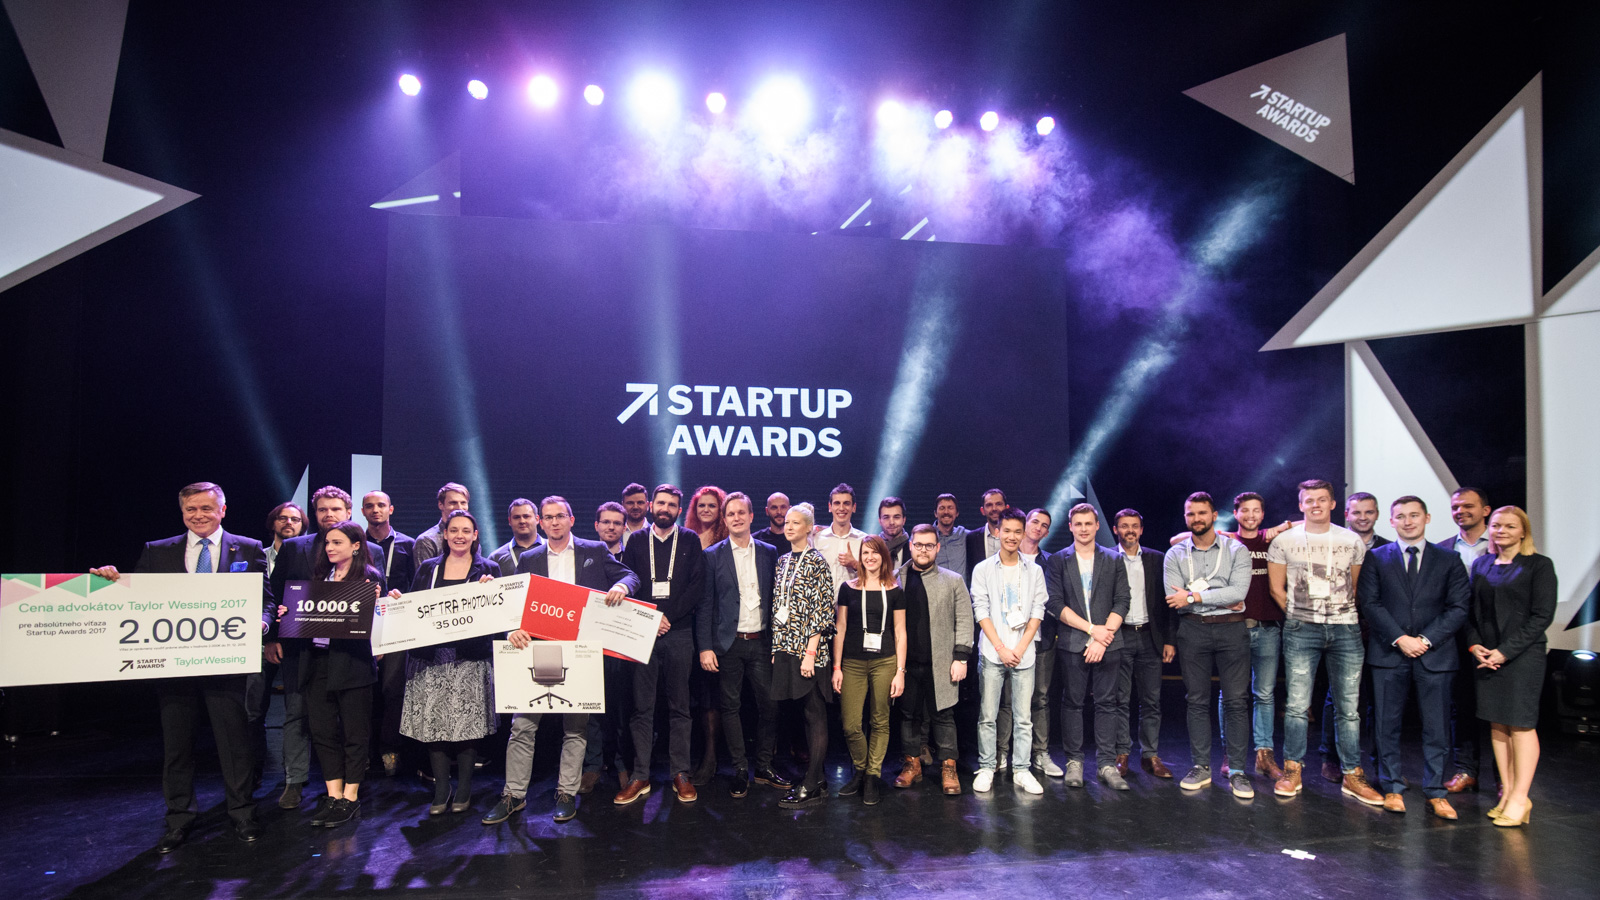 Startup Awards 2017, All Finalists